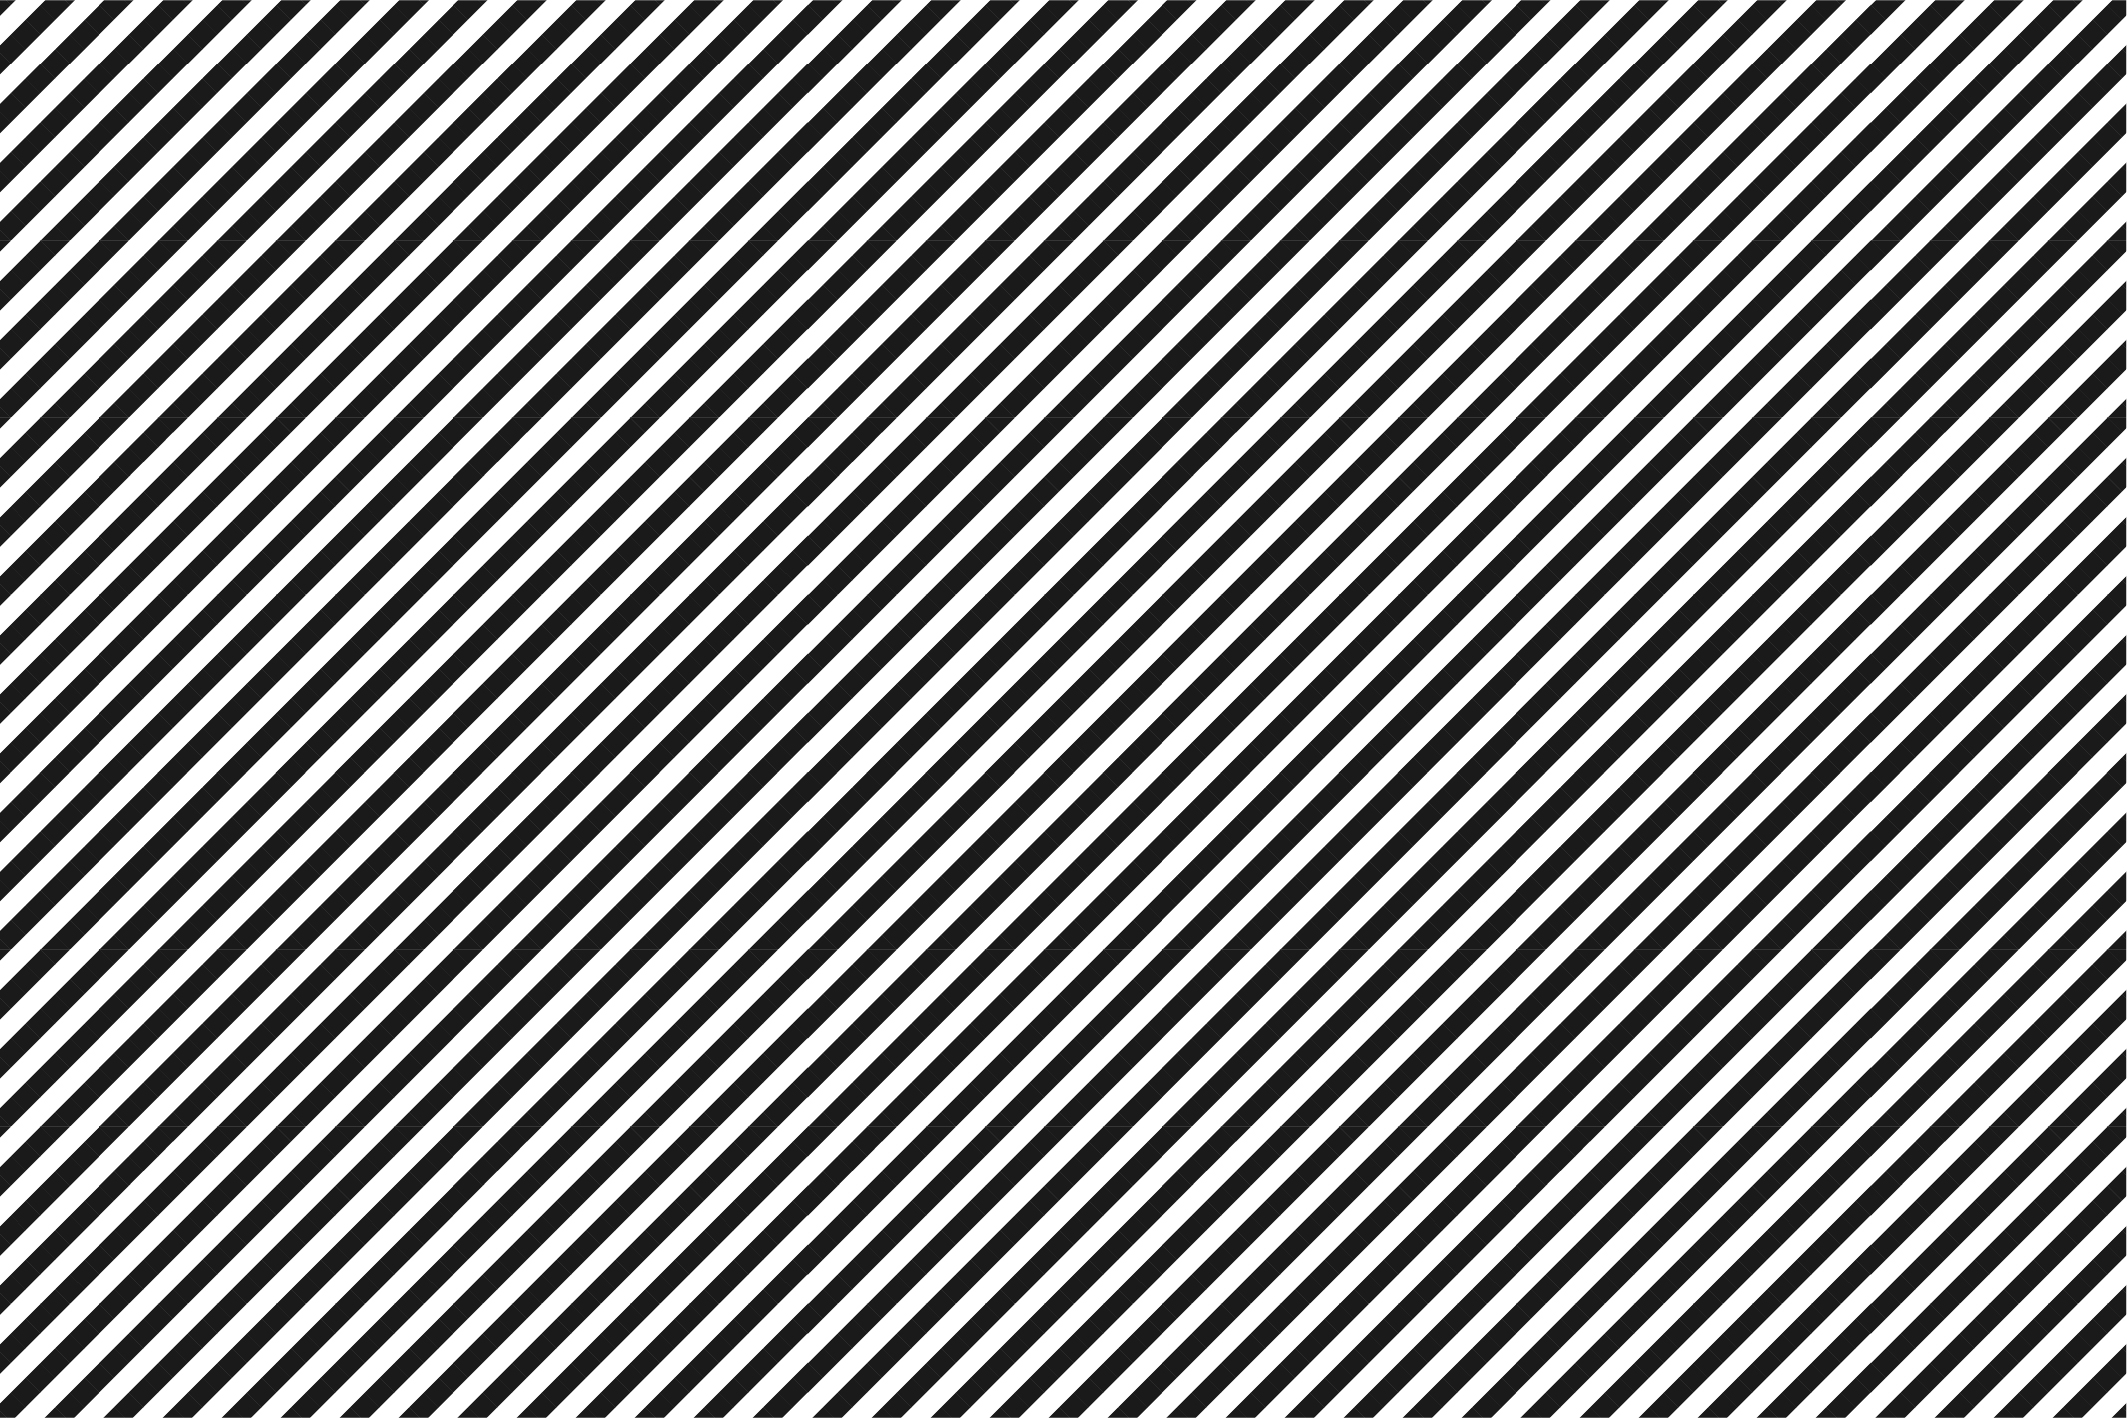 Geometric seamless patterns. B&W. example image 6